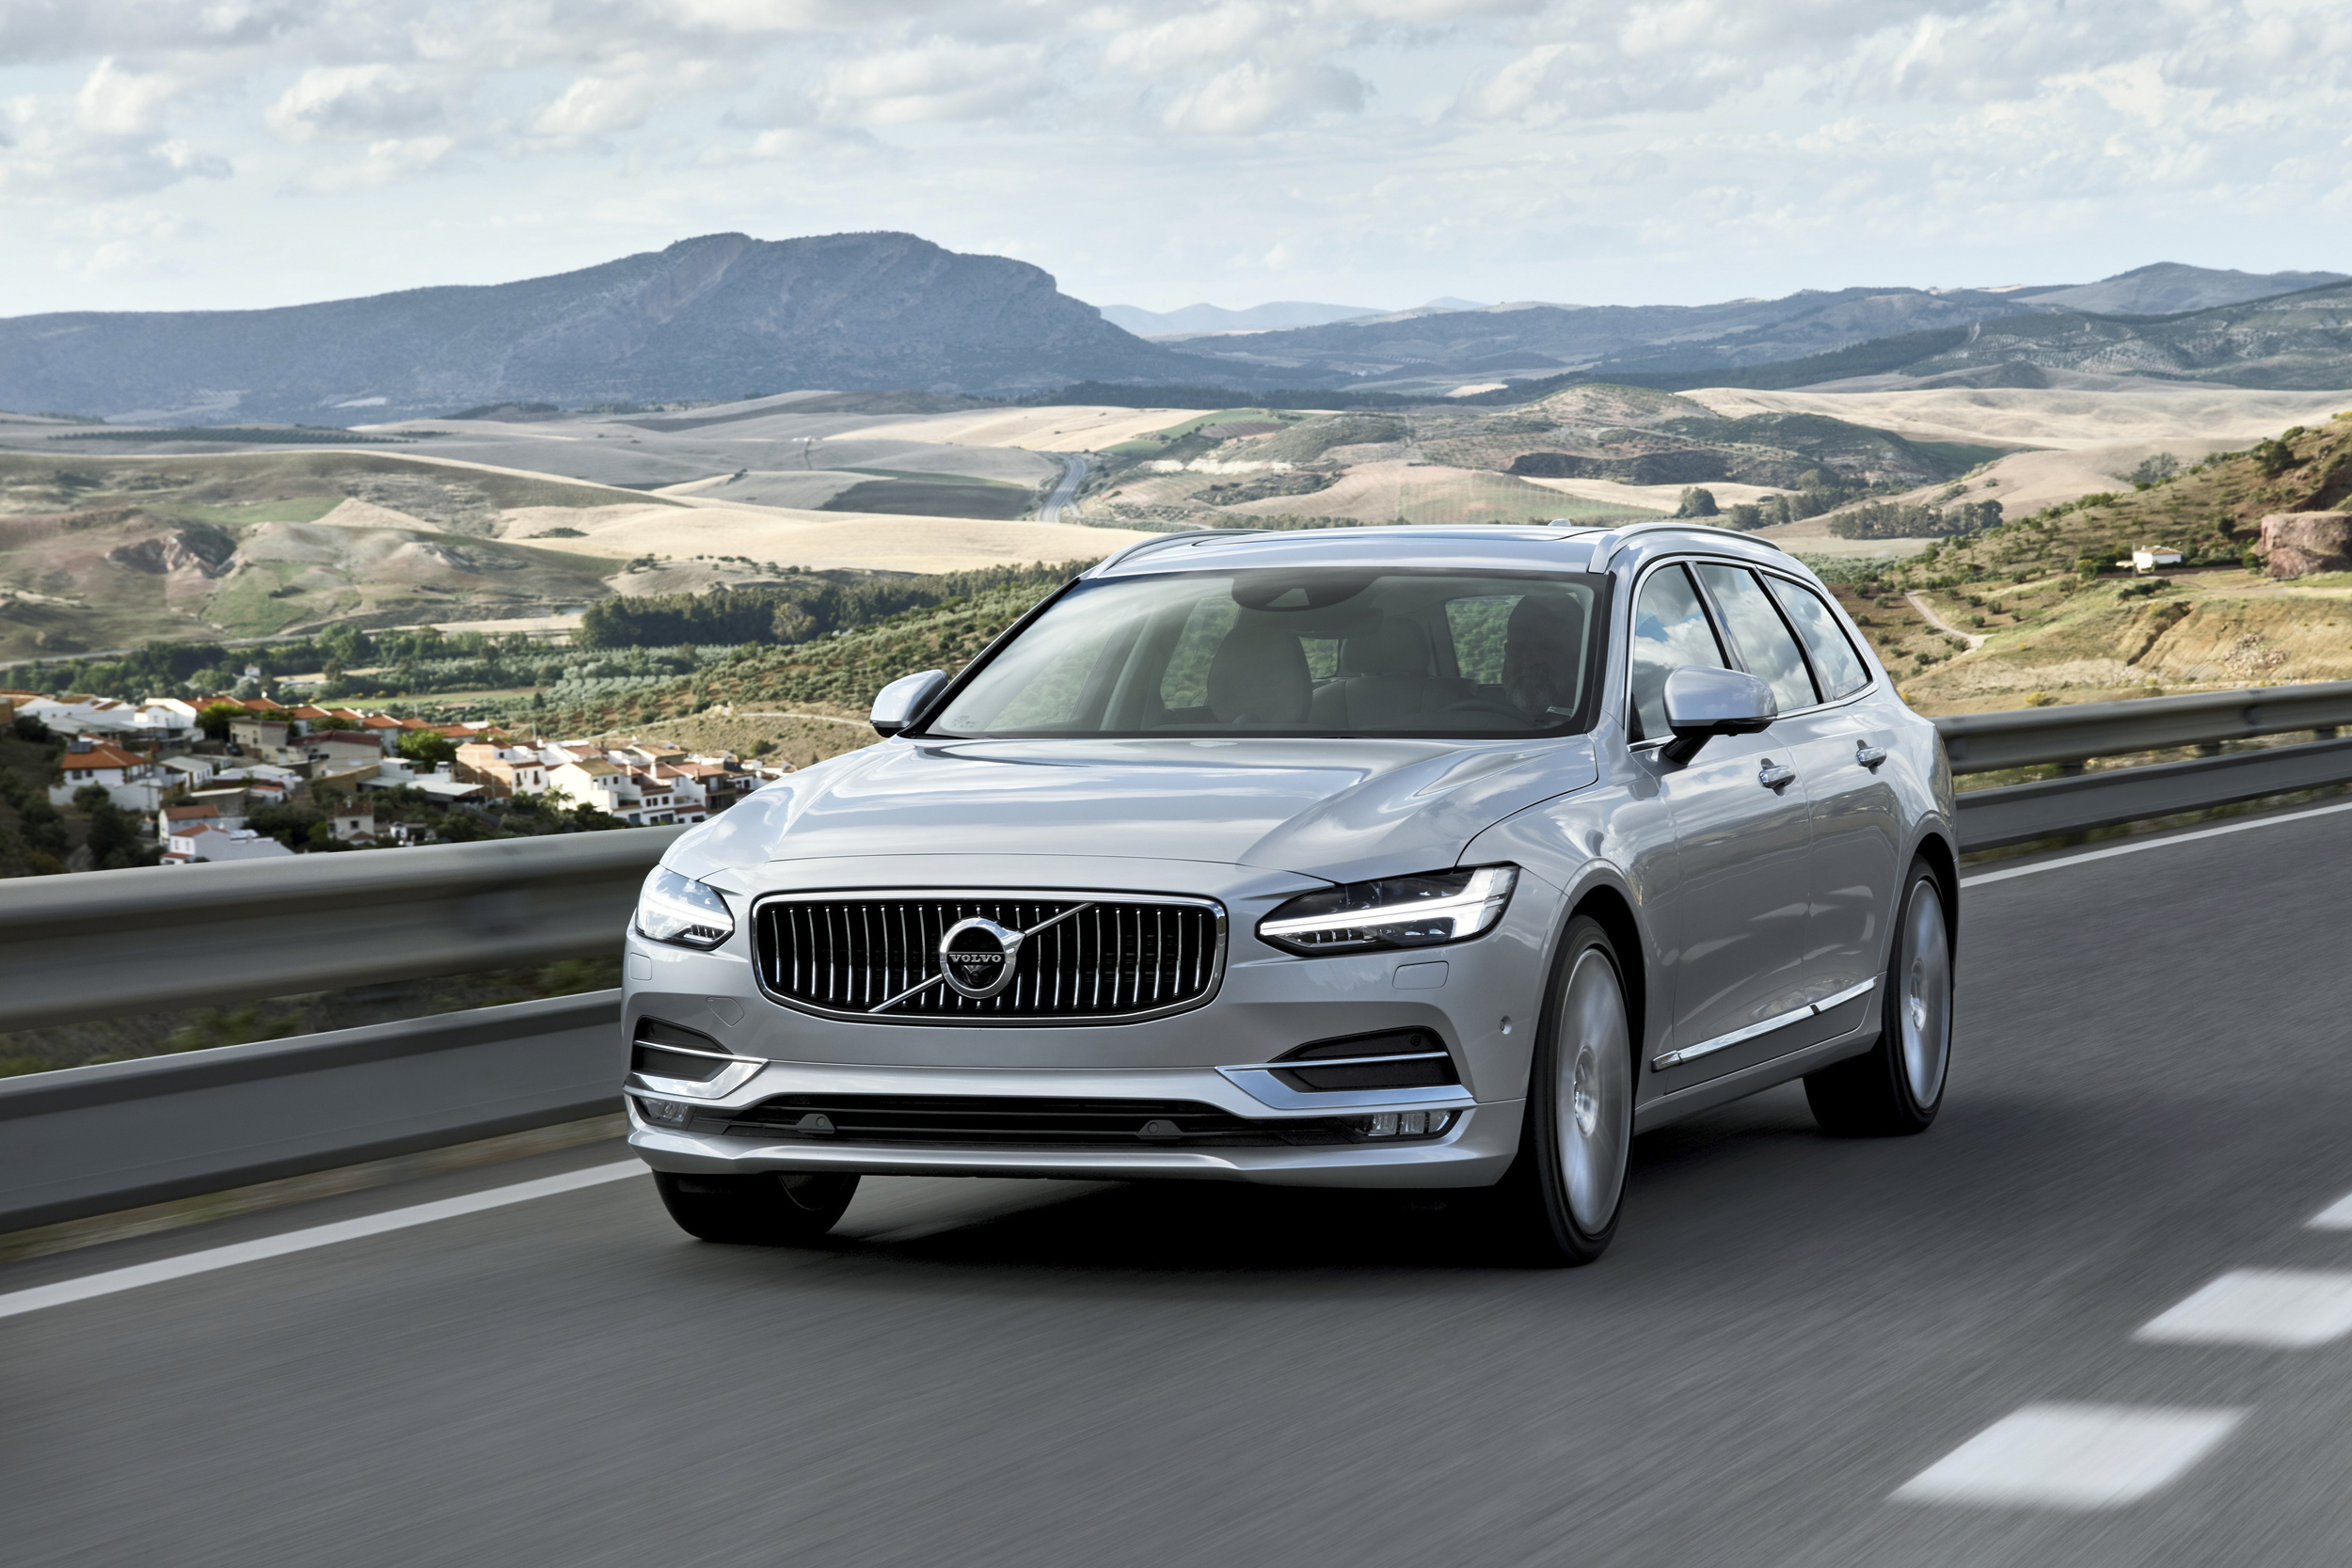 bowers advanced deals and volvo vision with price wheels upgrade t angeles momentum share inch los packages wilkins convenience